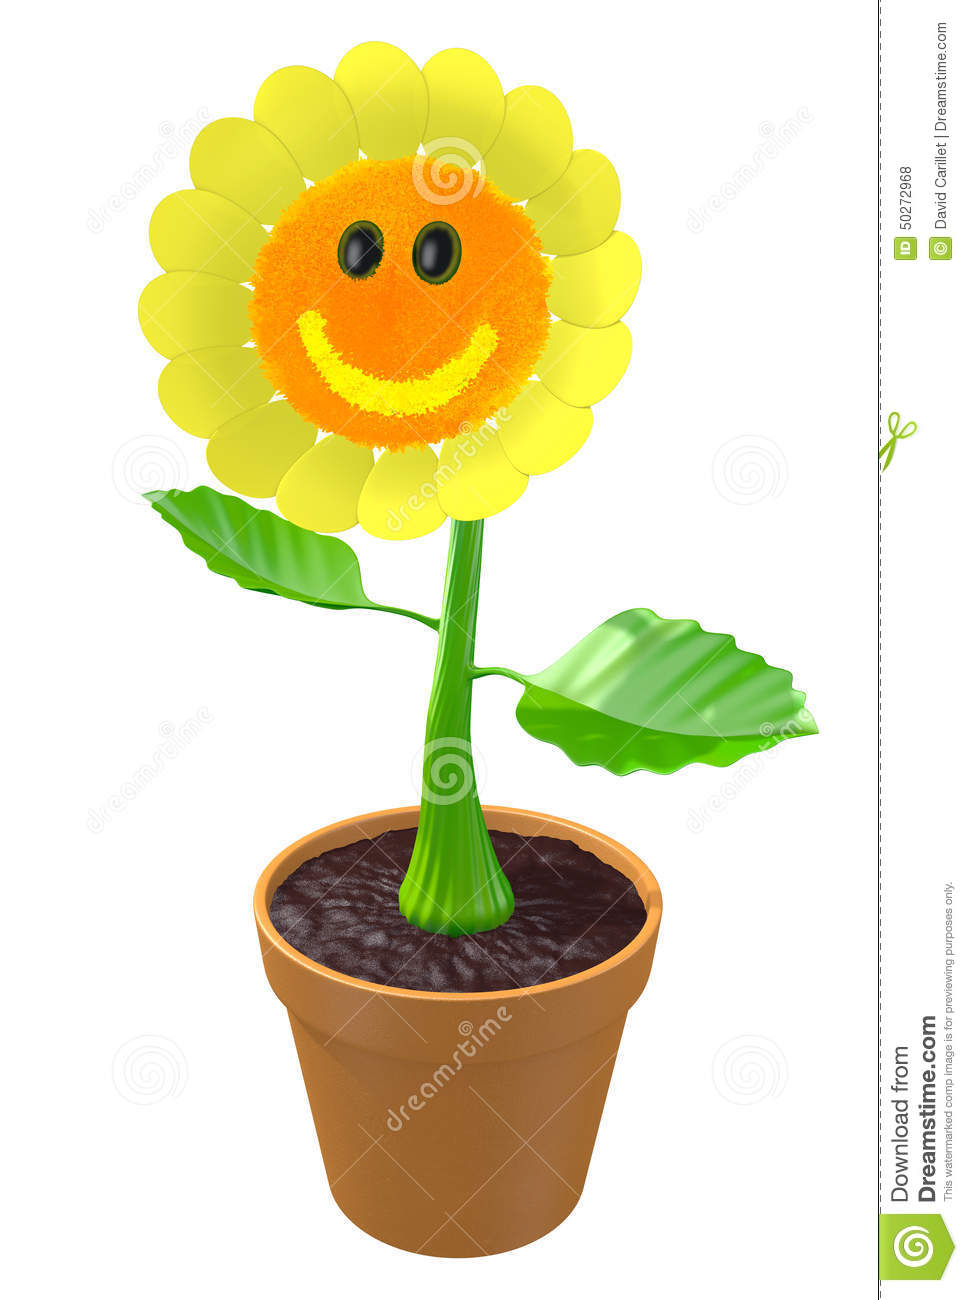 Happy 3d Flower With A Smiling Face Growing In A Garden